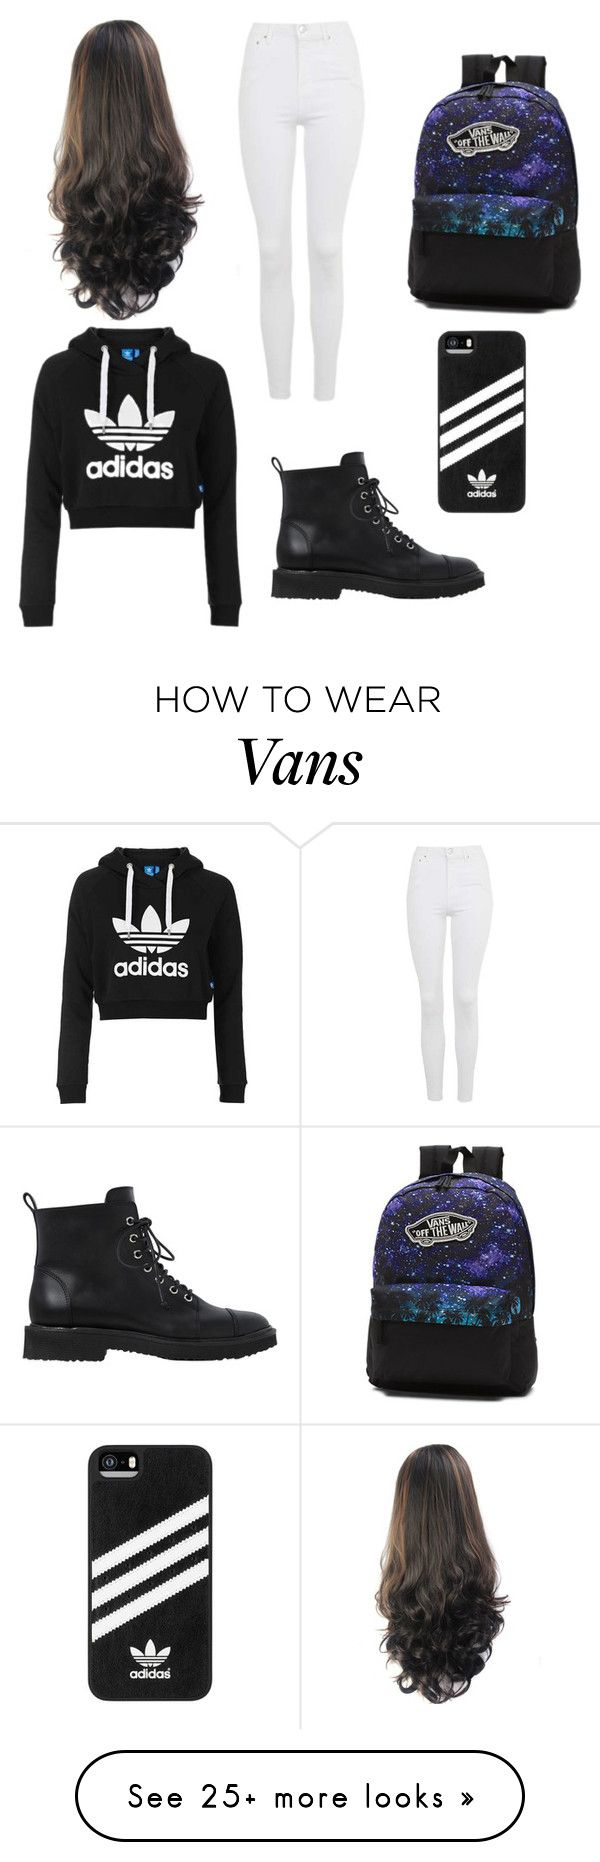 """Untitled #1"" by kaniatrish on Polyvore featuring Topshop, Giuseppe Zanotti, Vans and adidas"